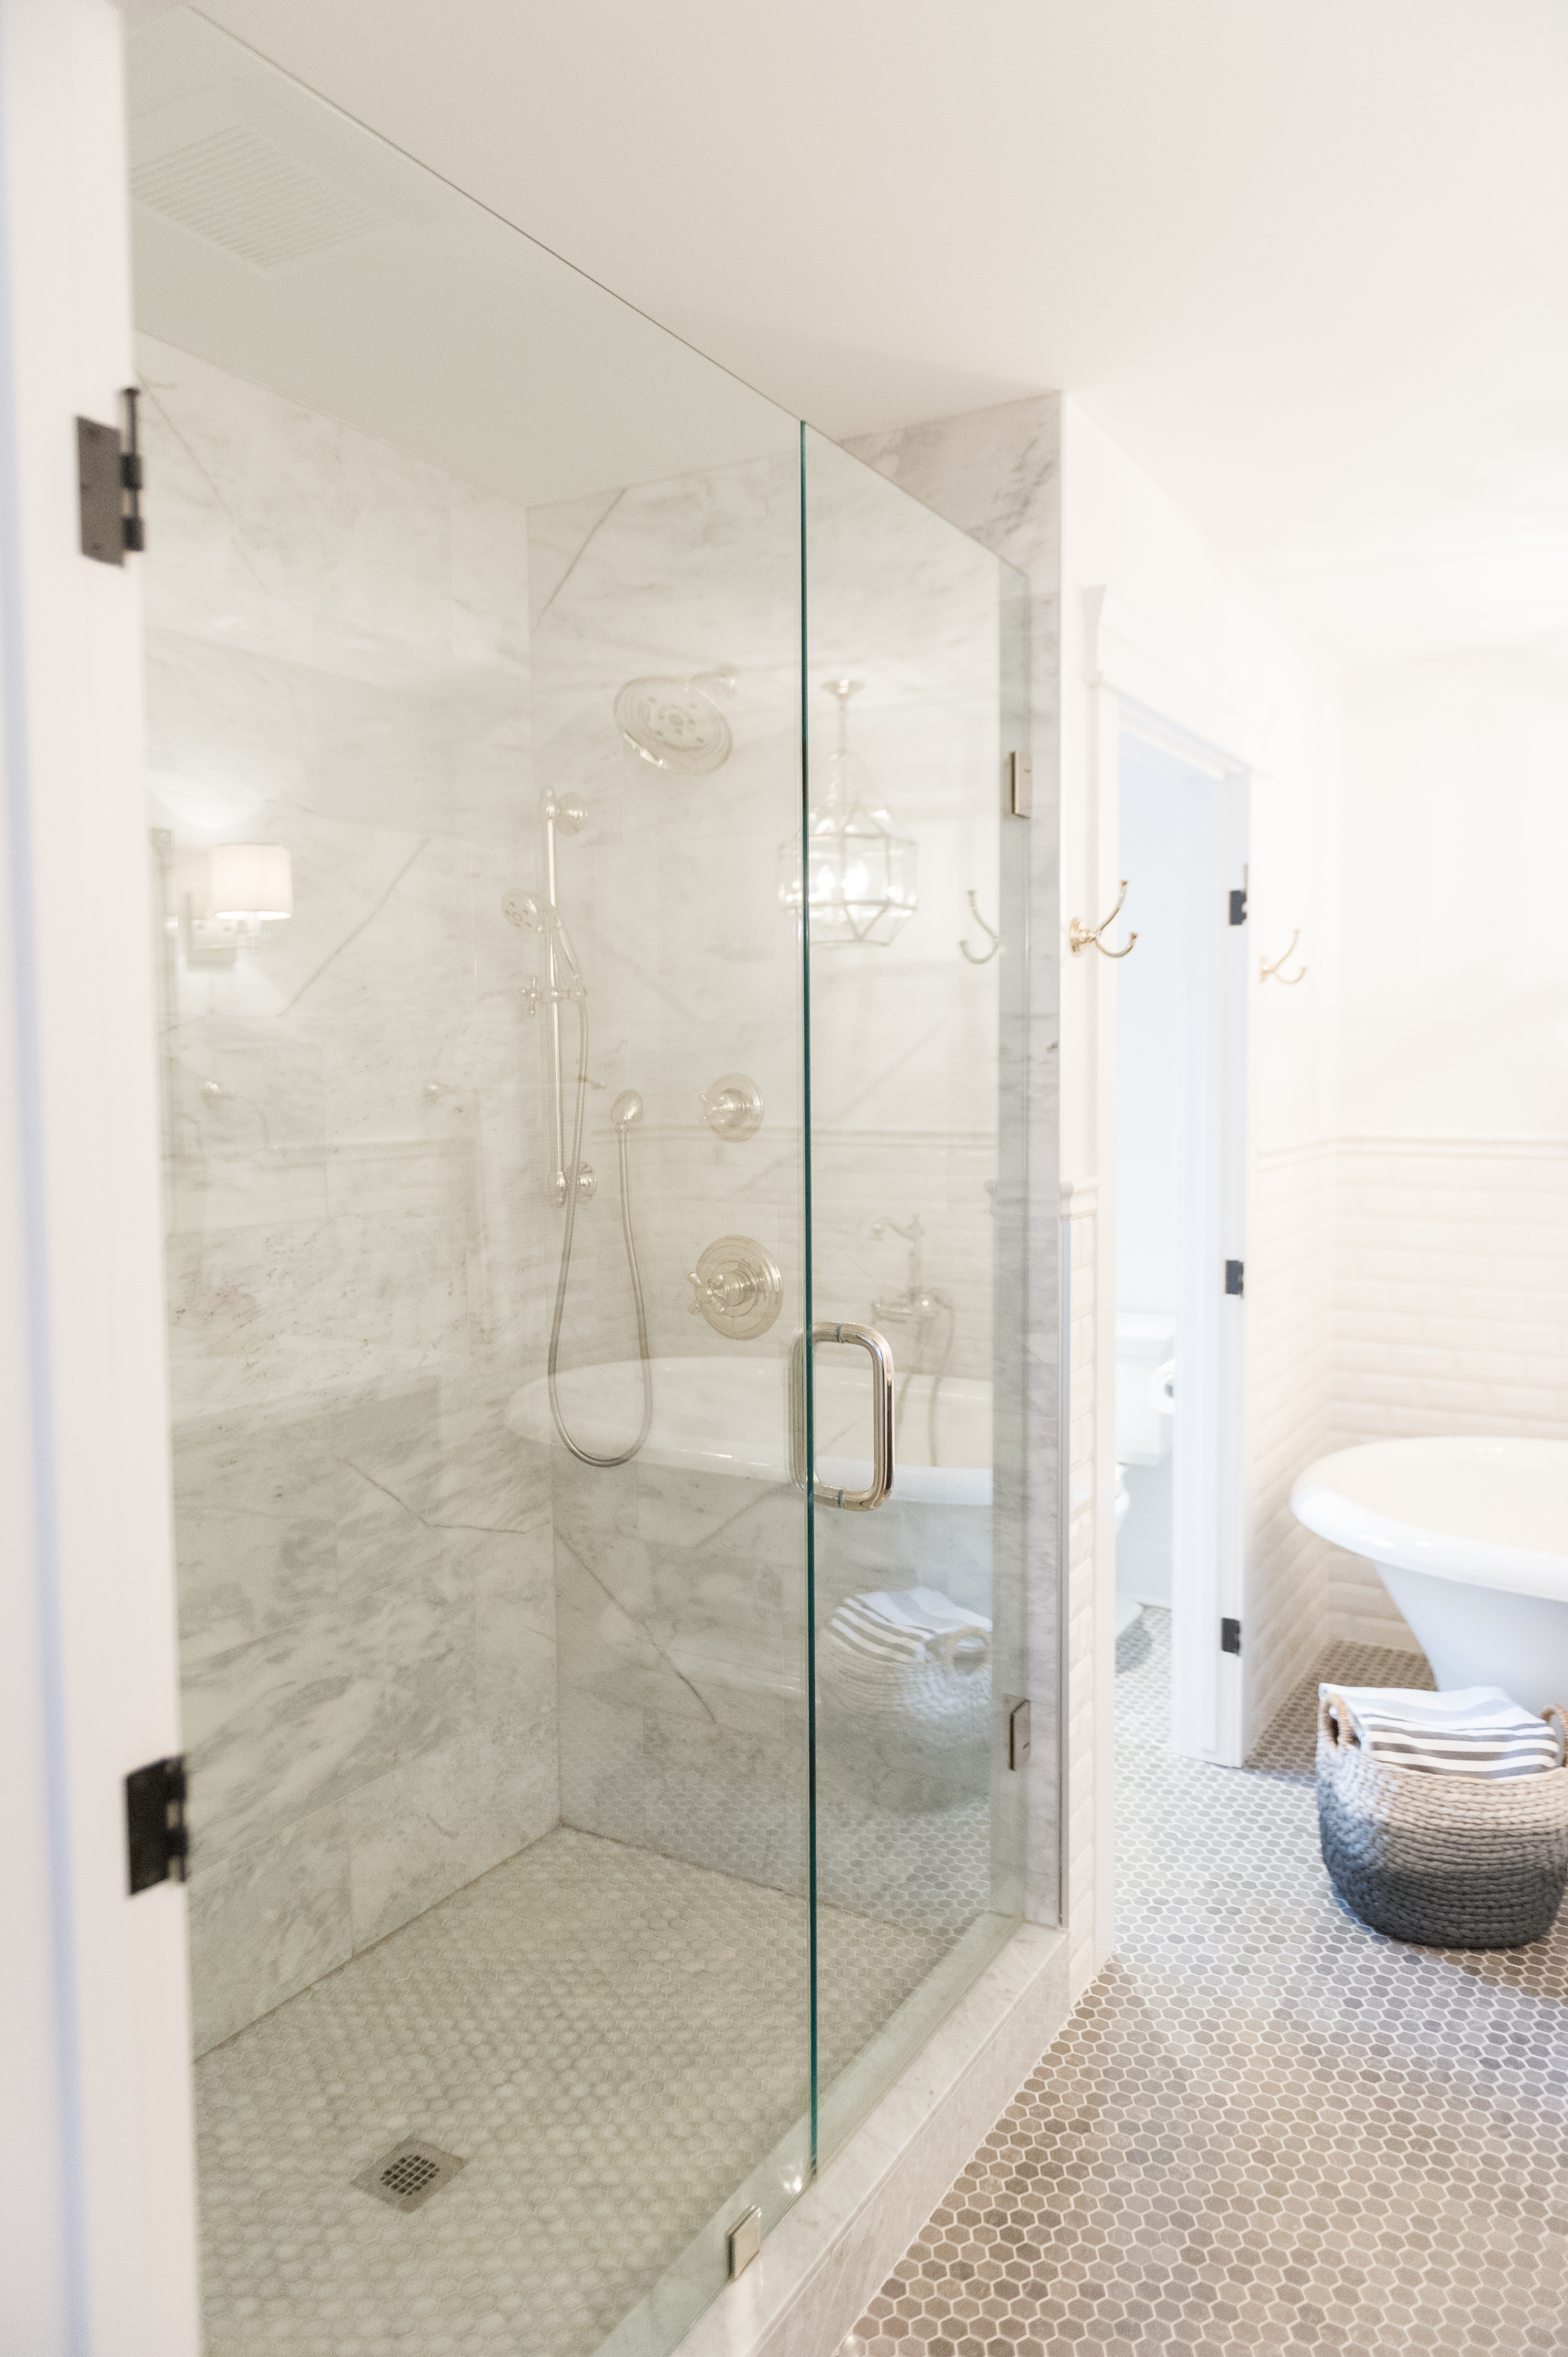 Modern french country ensuite renovation reveal the leslie style the showers have 12 x 24 marble tile the walls are a white beveled subway with a chair rail across the top doublecrazyfo Images